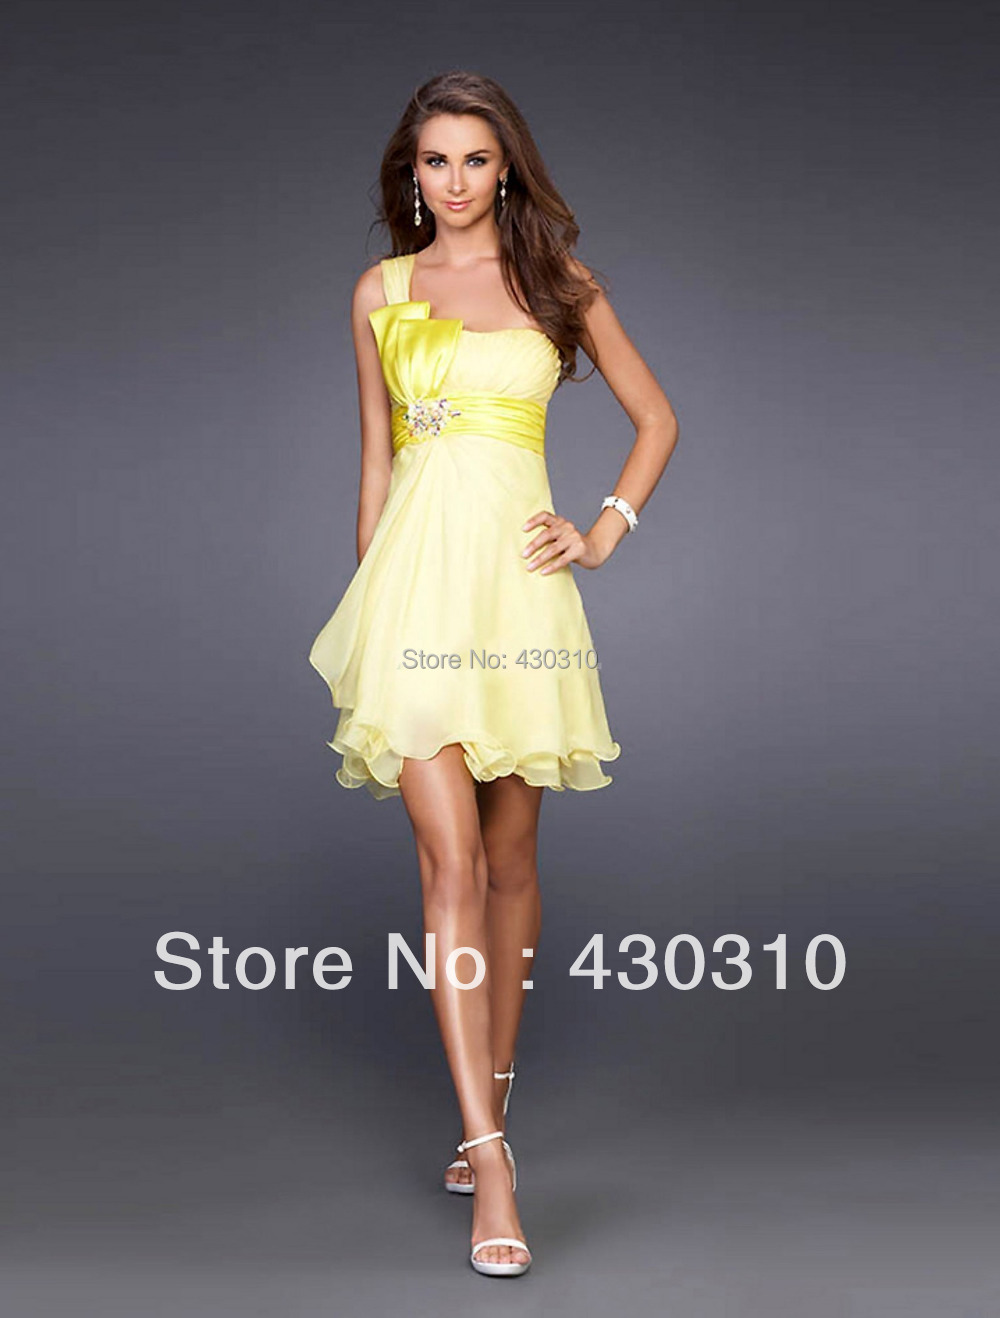 Summer Yellow Cocktail Dresses | Dress images